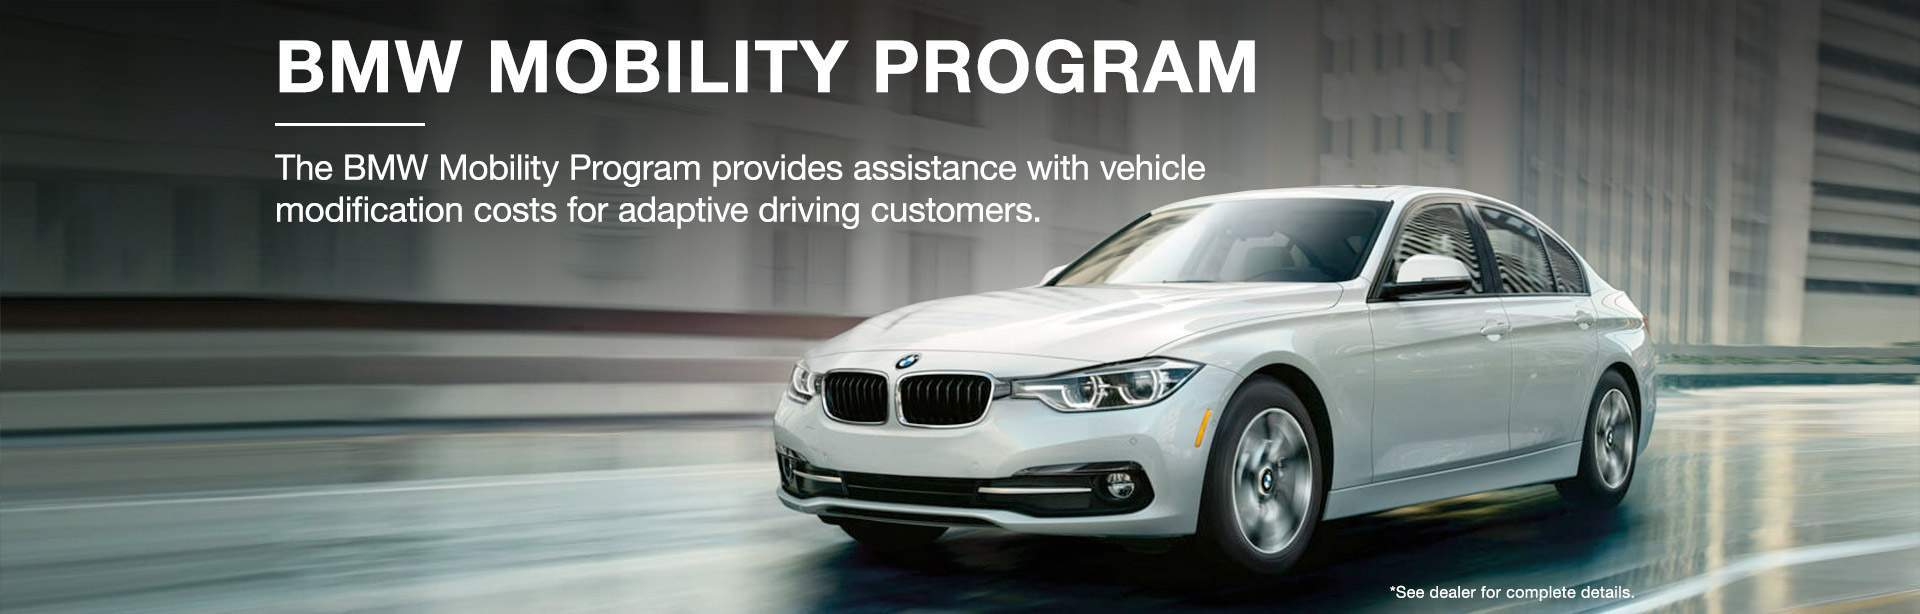 BMW Mobility Program at Cardenas BMW